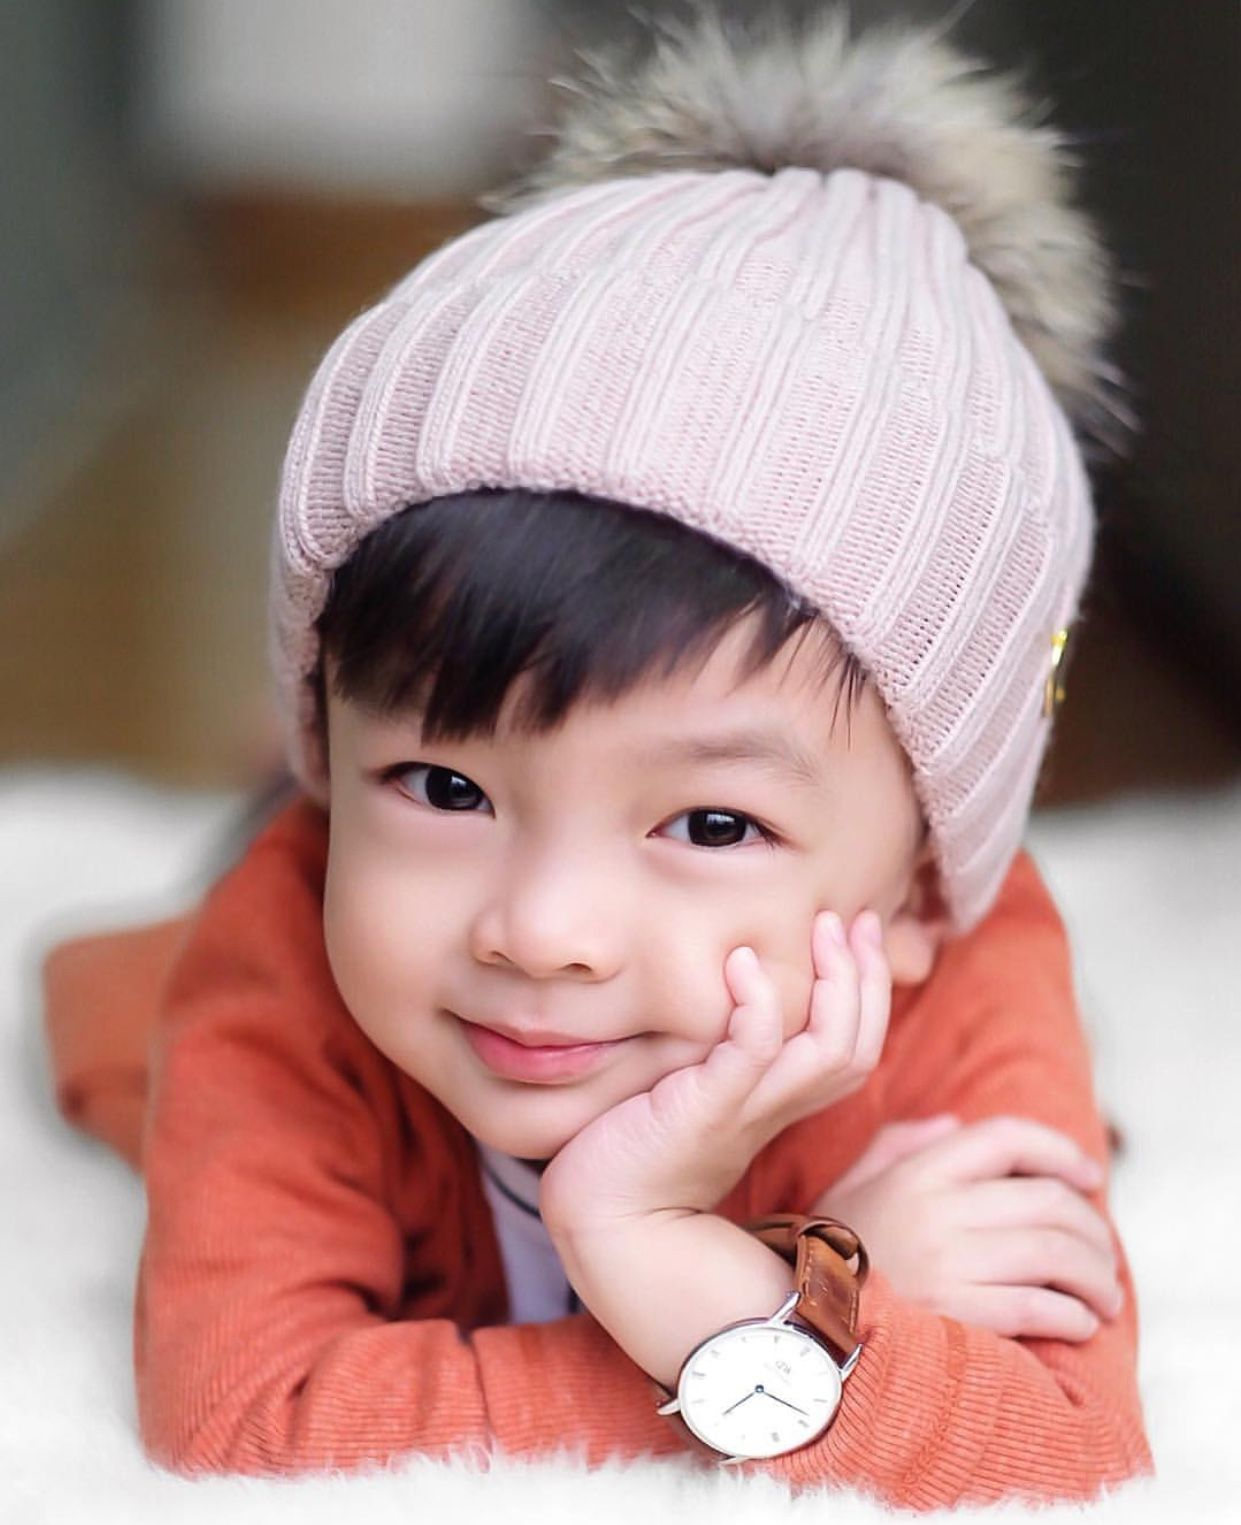 Pin By Vivian R On I Kid You Not Cute Baby Girl Pictures Cute Kids Baby Boy Fashion